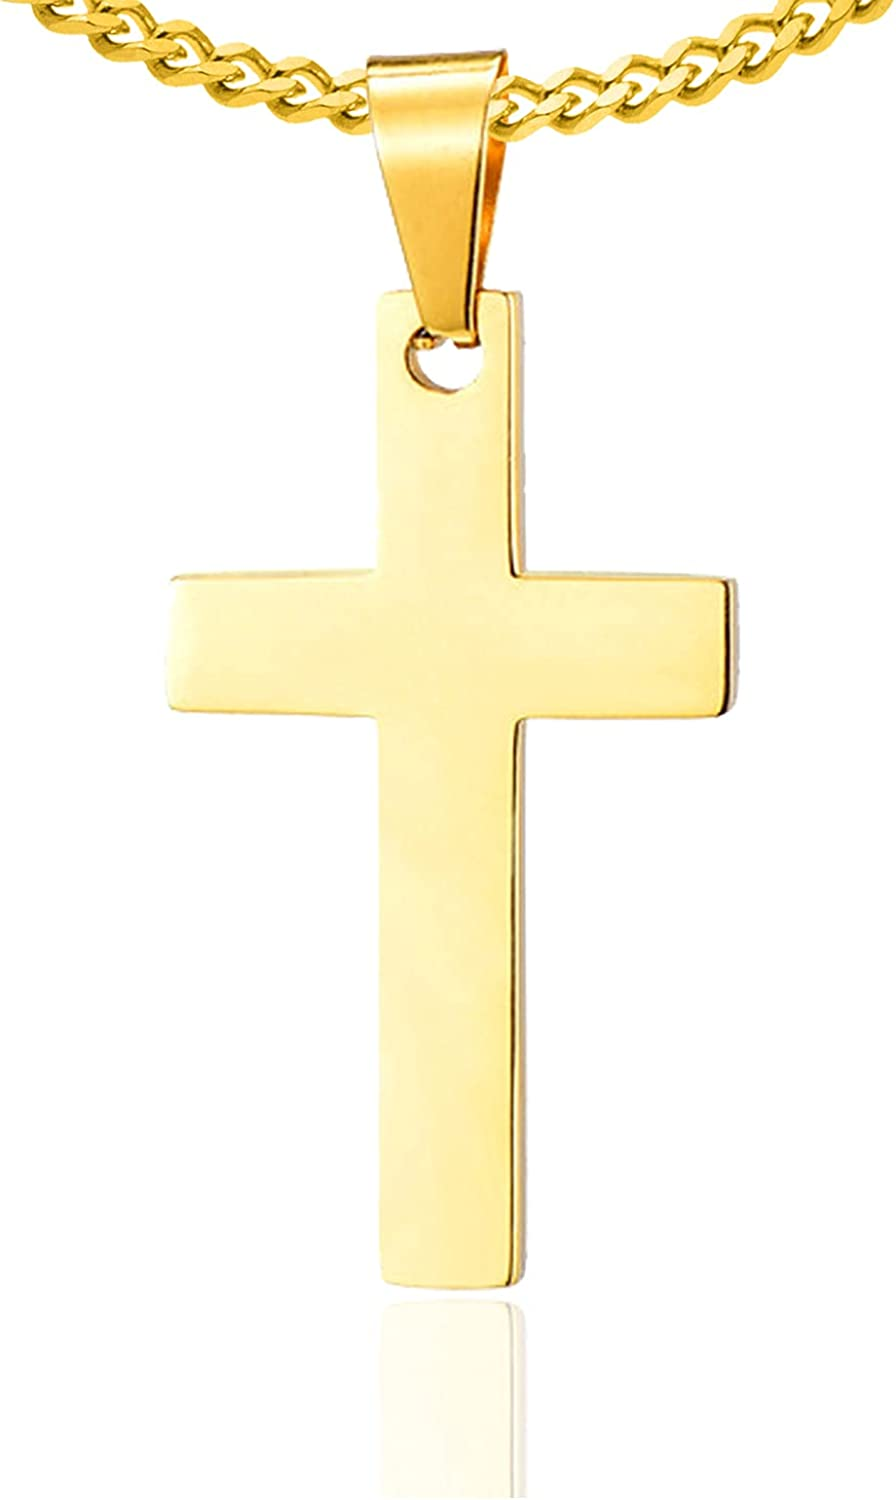 Xusamss 18K Gold Plated Stainless Steel Cross Religious Pendant Necklace,22inches Link Chain